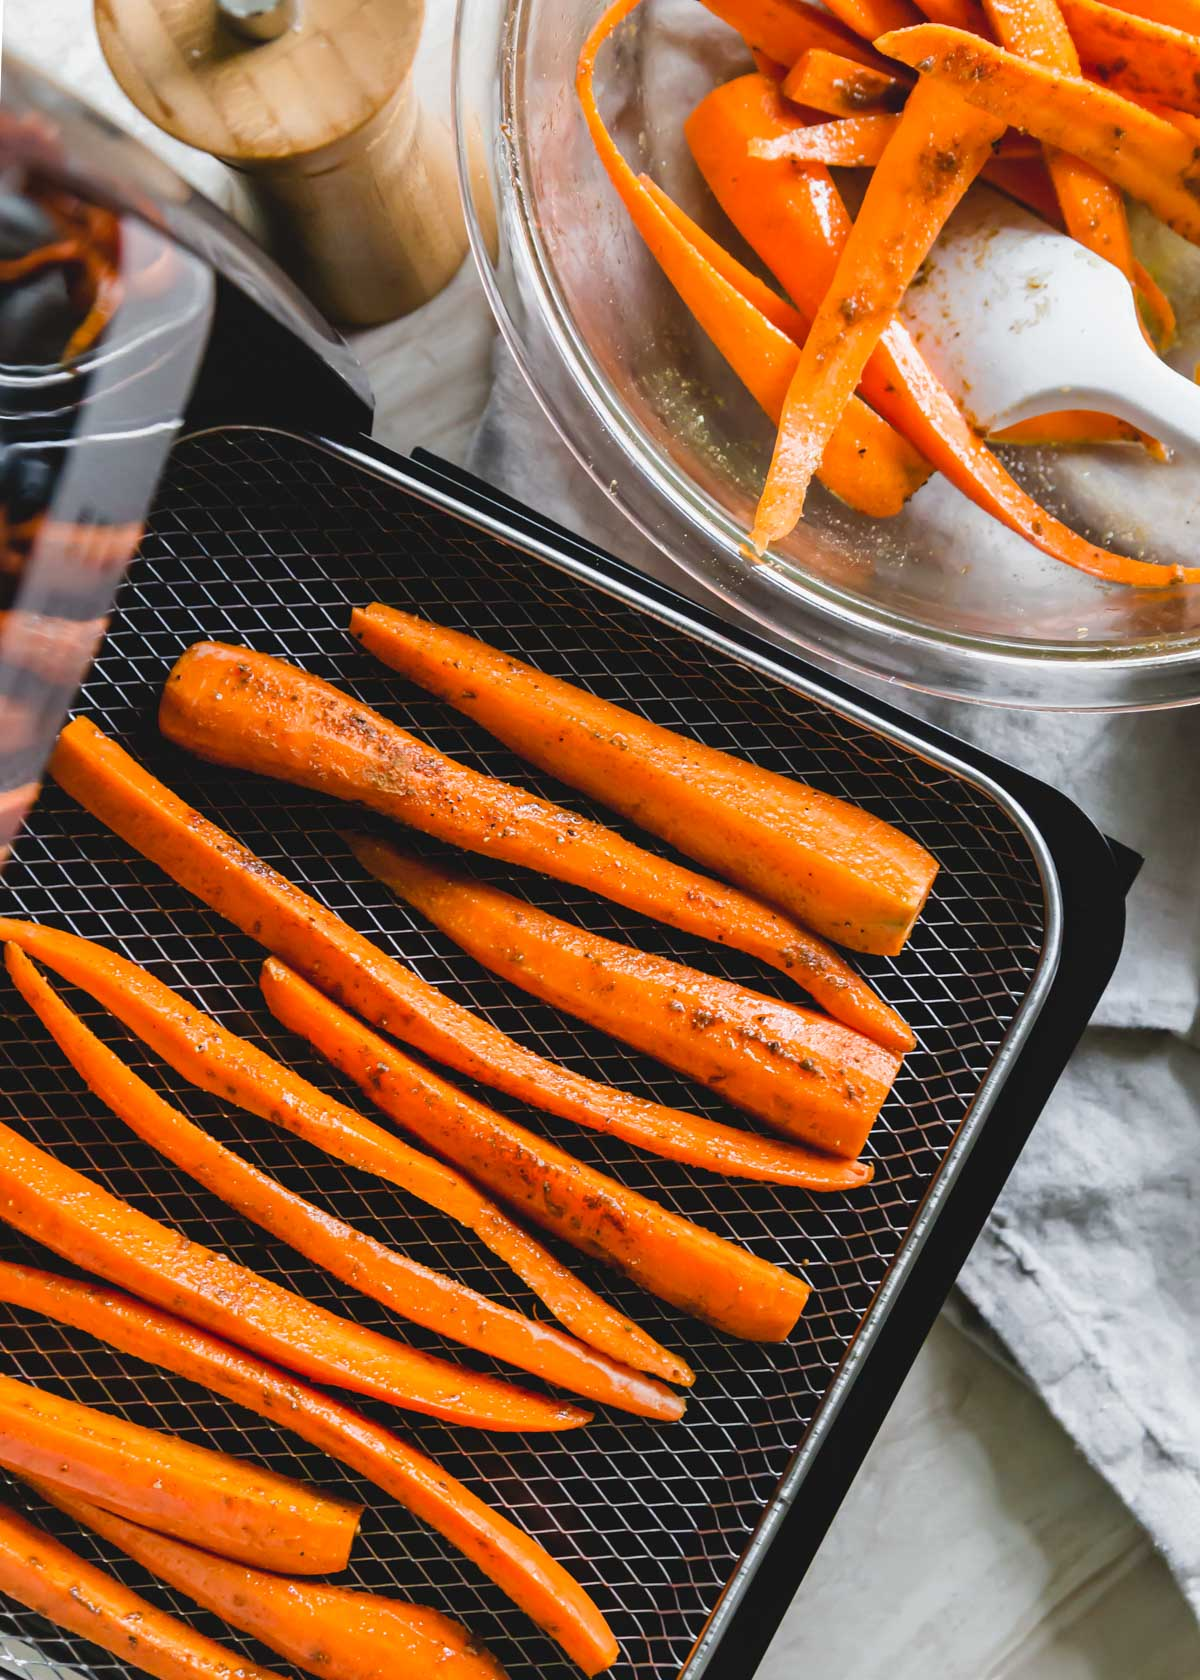 Making carrots in the air fryer is simple no matter which model you have. A quick 20 minutes at 400 degrees gives you tender carrots with crispy golden edges.